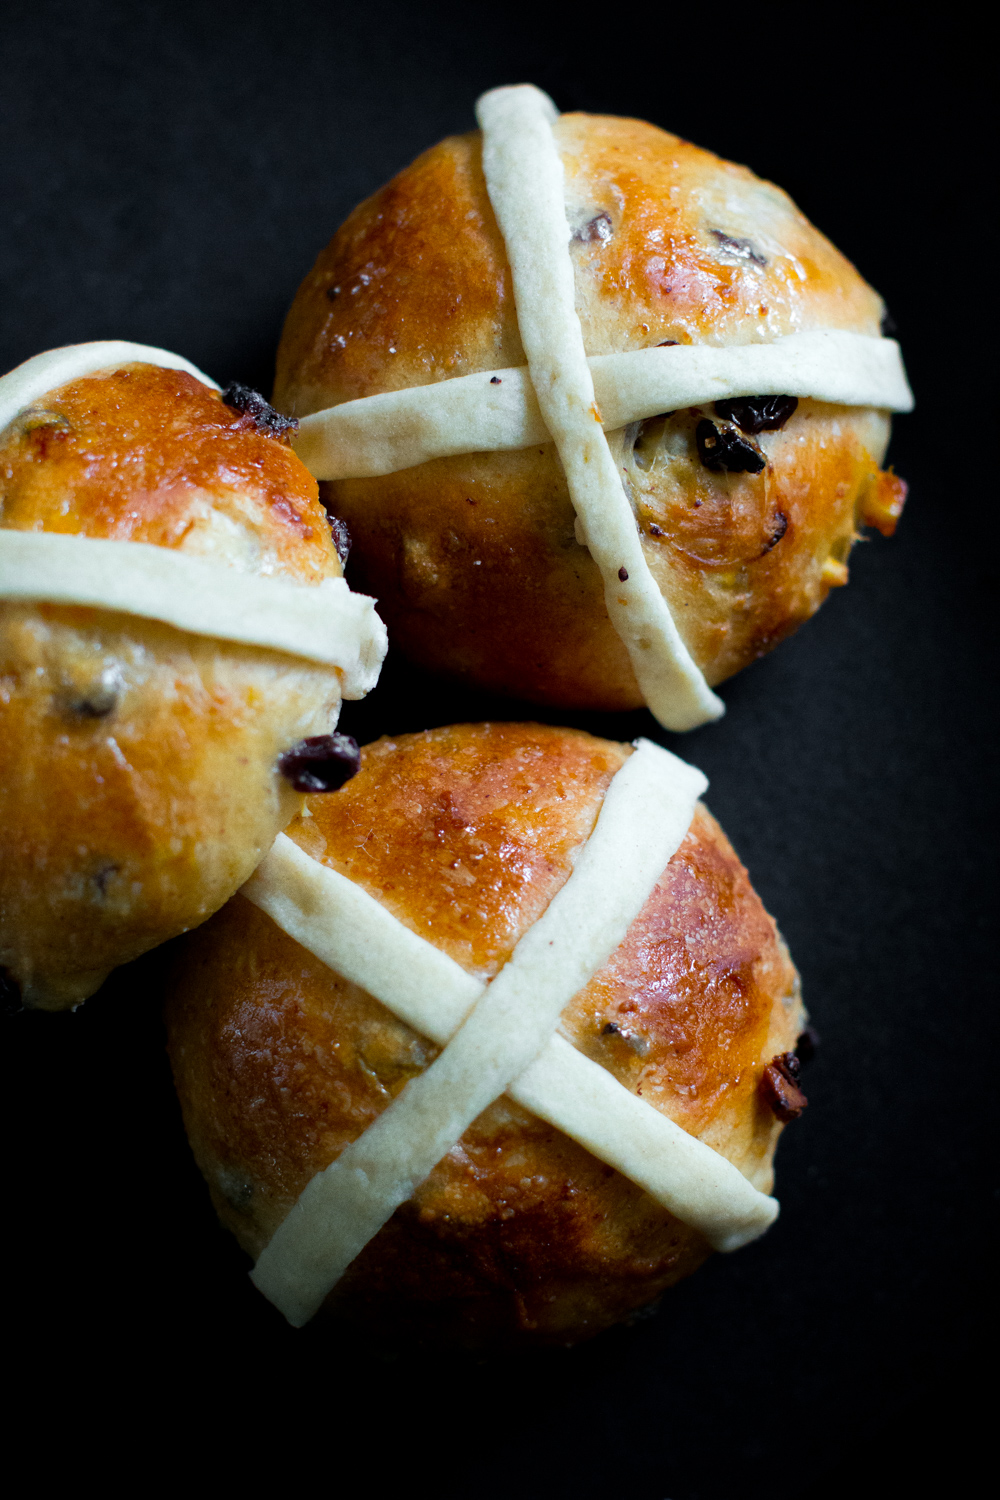 Hot Cross Buns by Baking The Goods from the Hot Cross Buns by Delia Online recipe